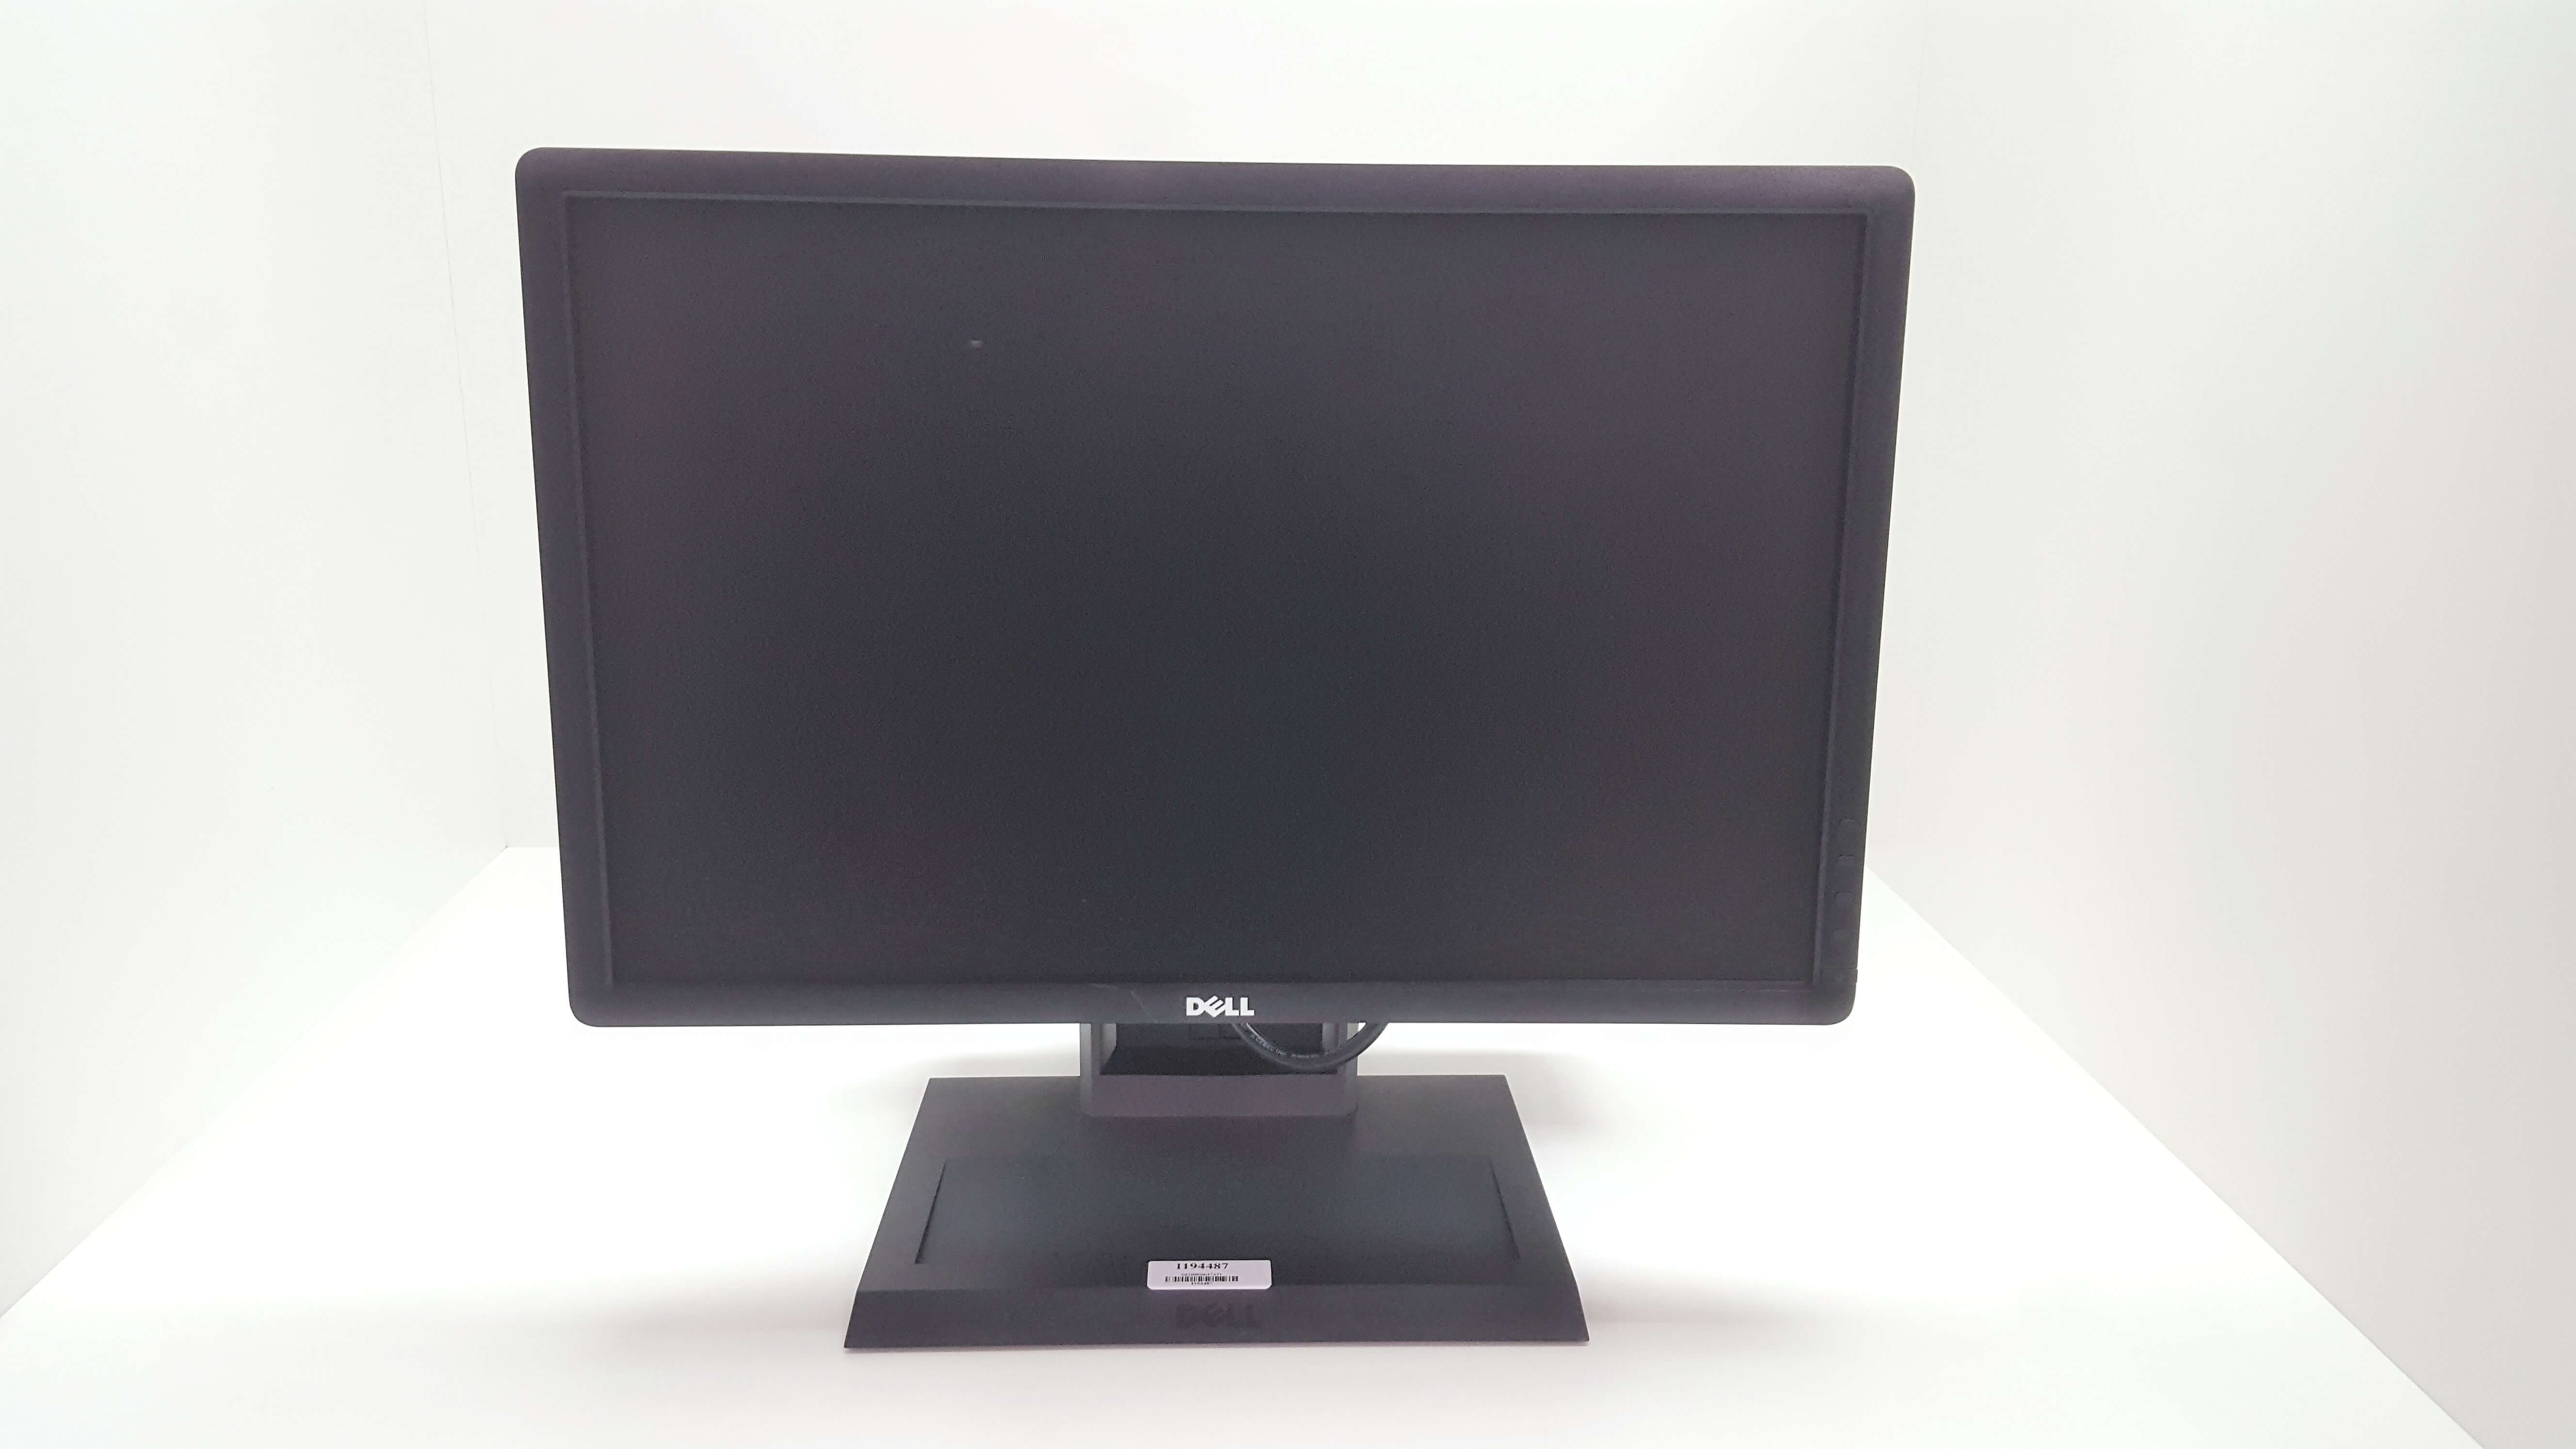 DELL ALL IN ONE DELL 9010 SFF I5-3470 3.2GHz / 4096 MB DDR3 / 250 GB / DVD WIN 7 PRO COA + DELL P2213F 22